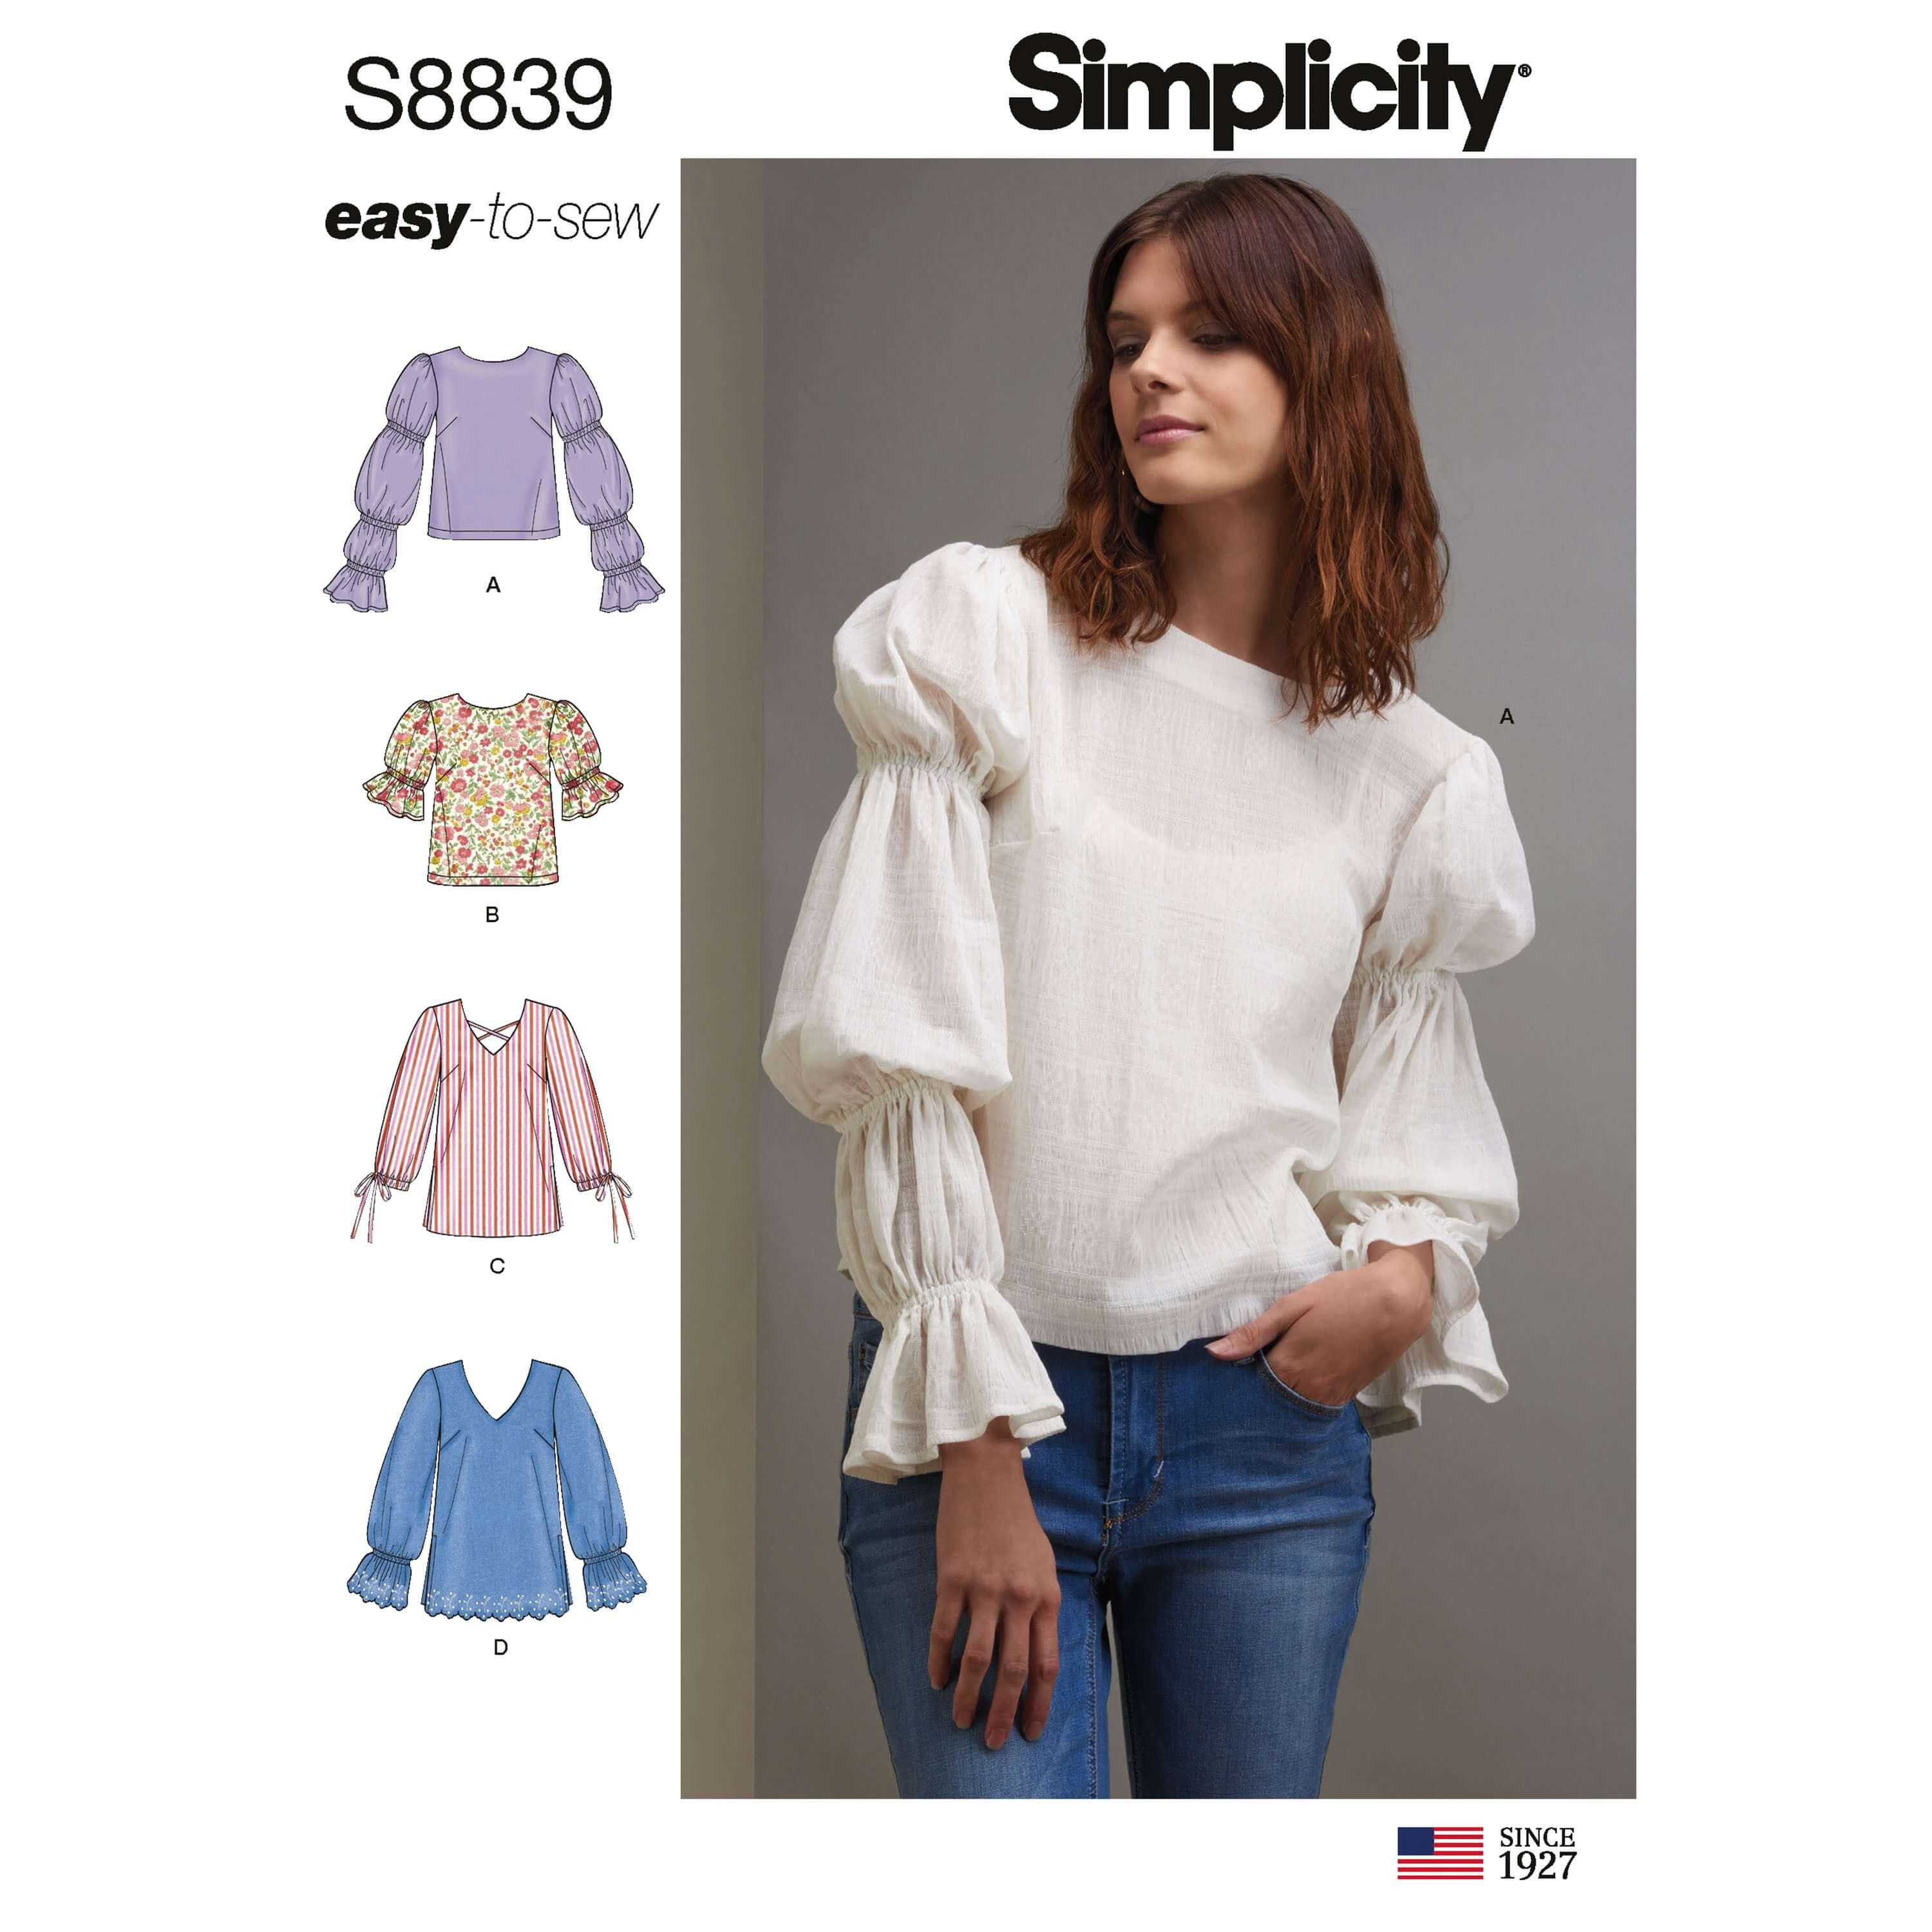 Simplicity Sewing Pattern 8839 Misses' Pullover Tunic or Tops